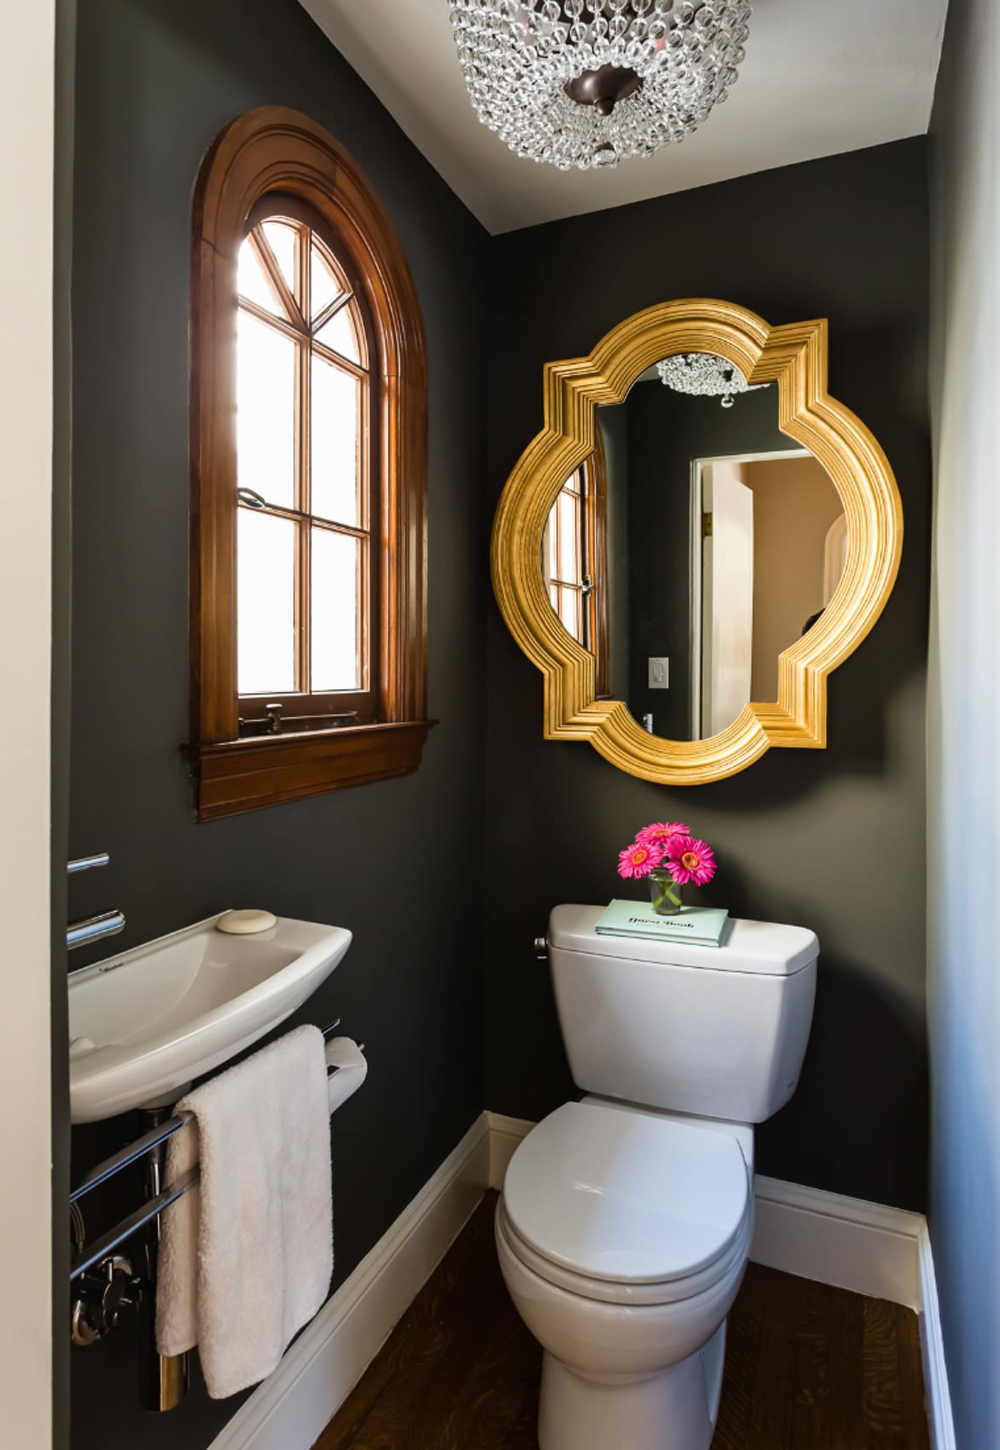 Small dark cloakroom with feature mirror - JL Interior Design || 15 small cloakrooms / powder rooms that are big on style - FIRST SENSE